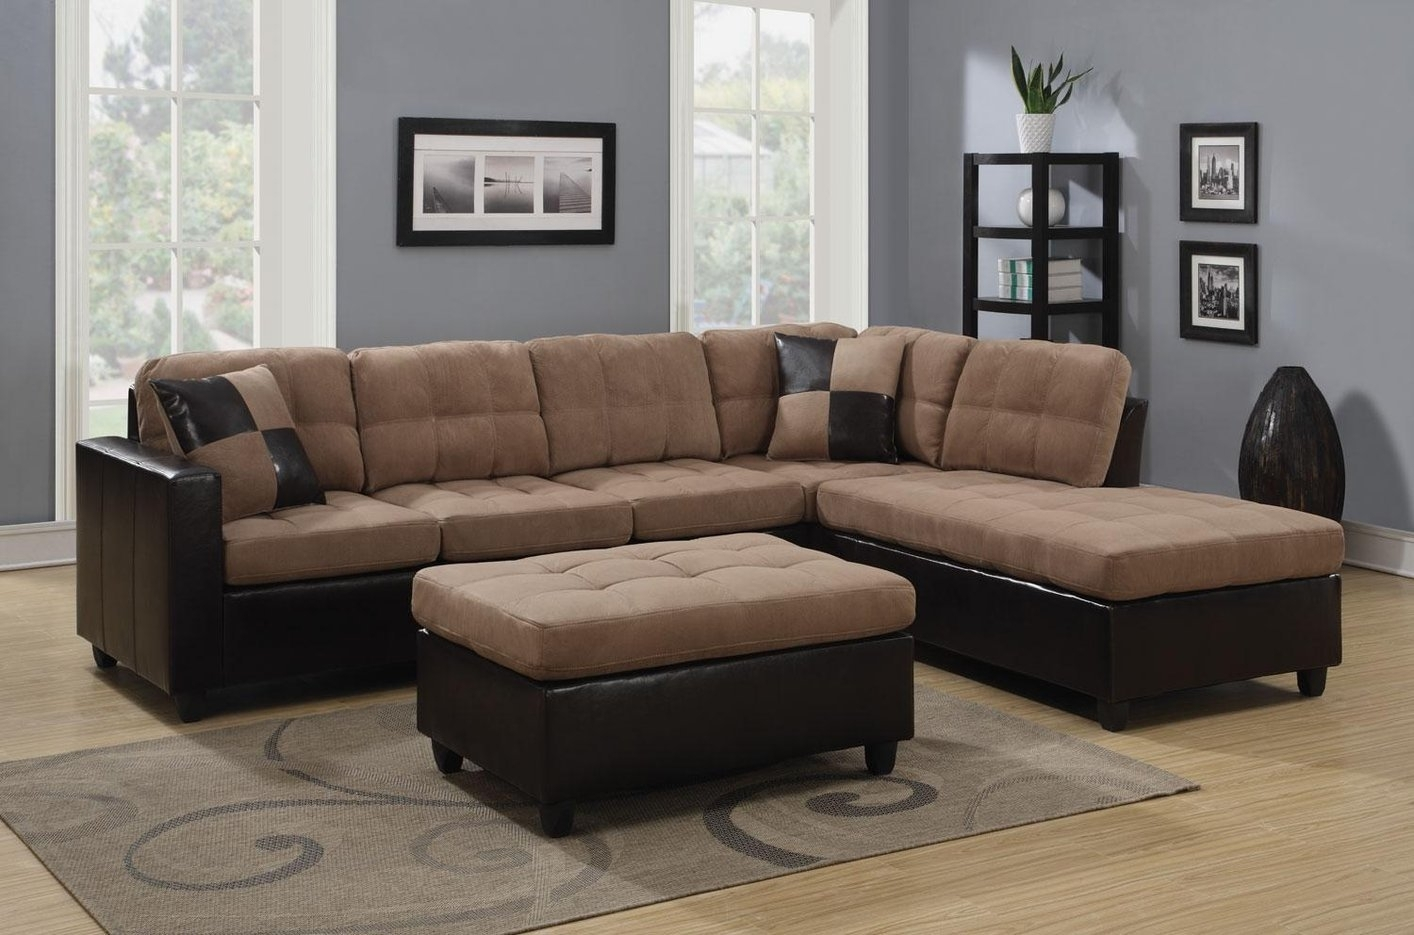 Sectional Sofa Design: Amazing Beige Sectional Sofas Beige Leather Inside Beige Sectional Sofas (Image 10 of 10)